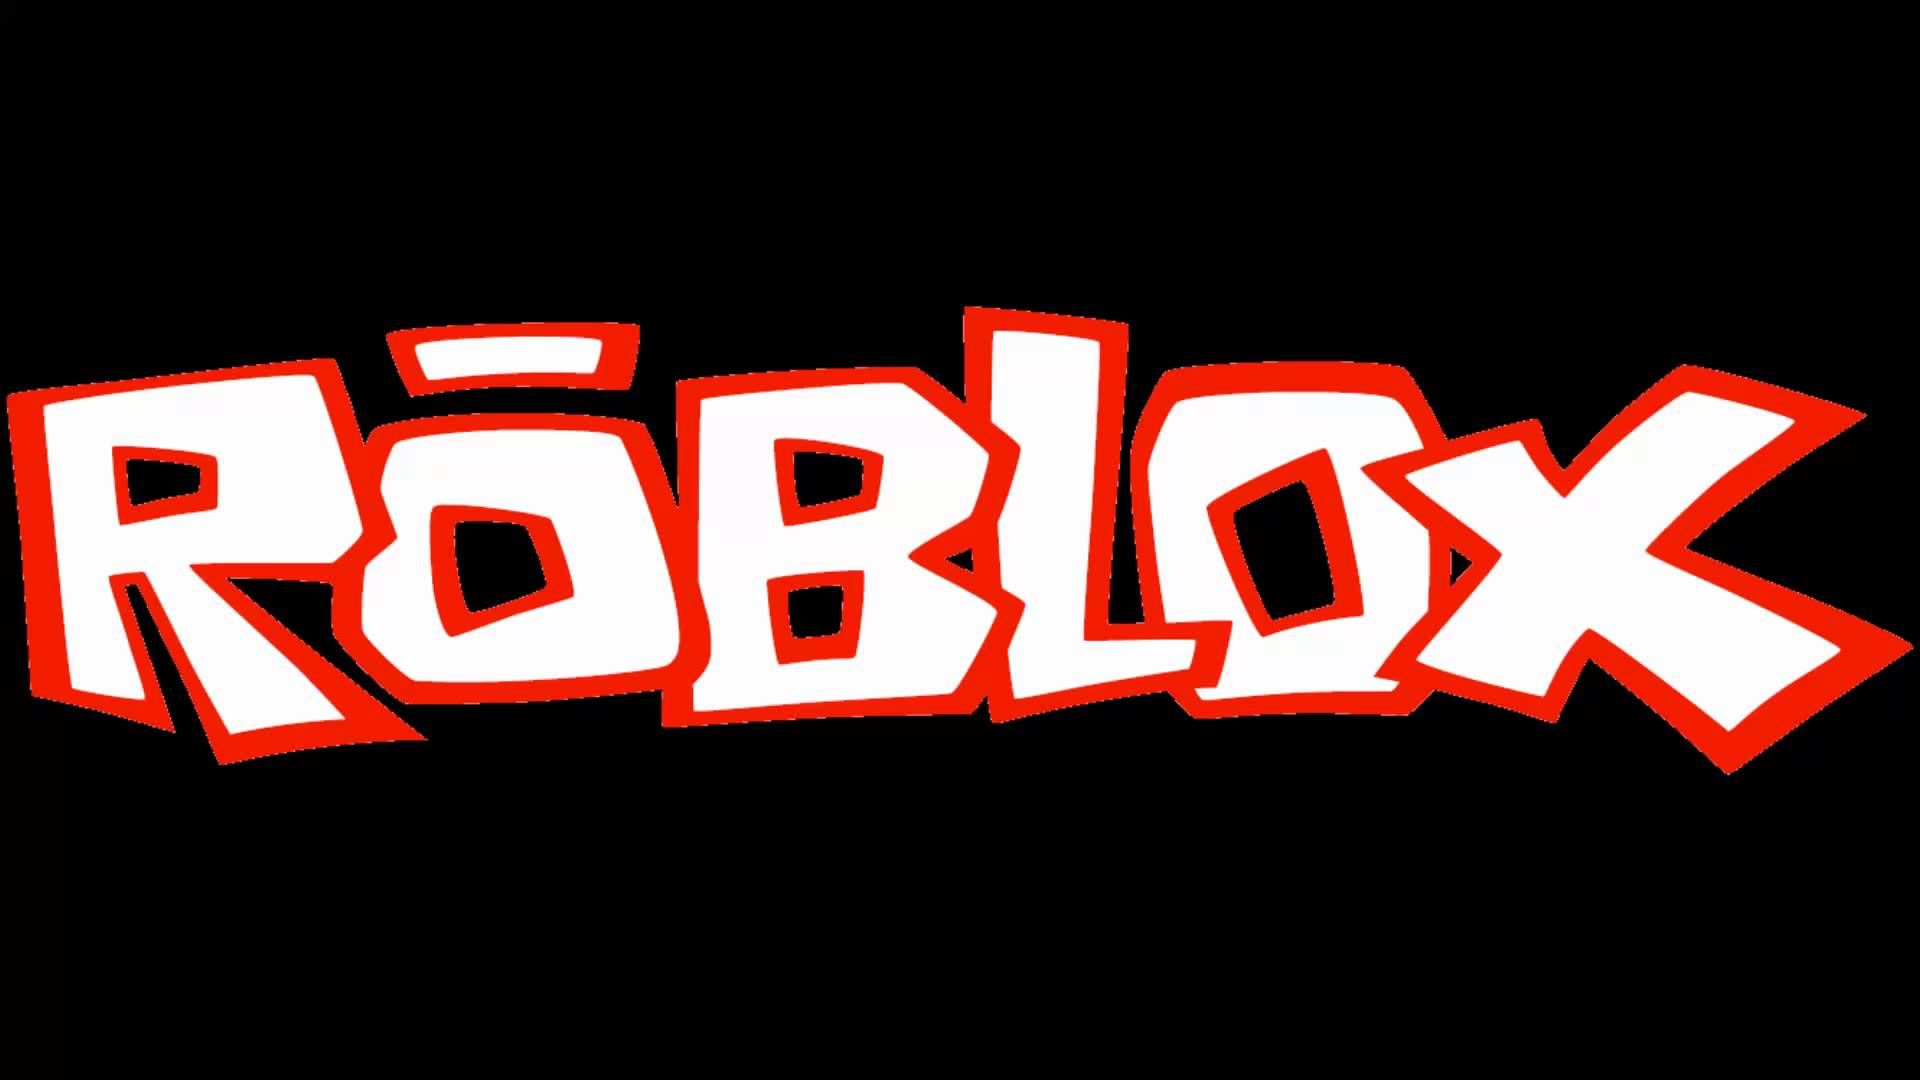 Black t shirt roblox - Roblox Logo Roblox Posters And Wallpaper Pinterest Birthdays 10th Birthday And Birthday Party Ideas